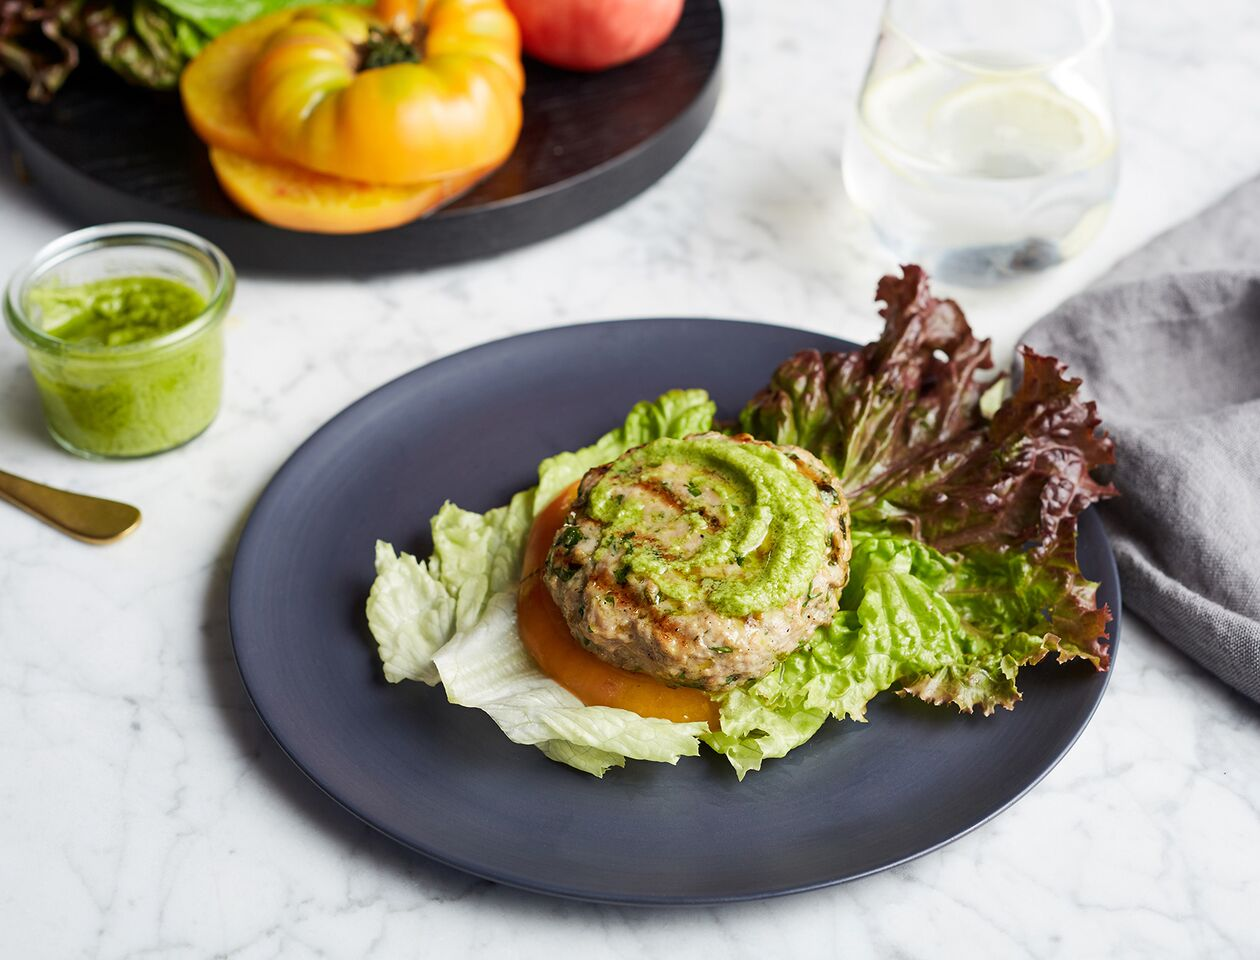 Lettuce Wrapped Turkey Burger with Basil Guac